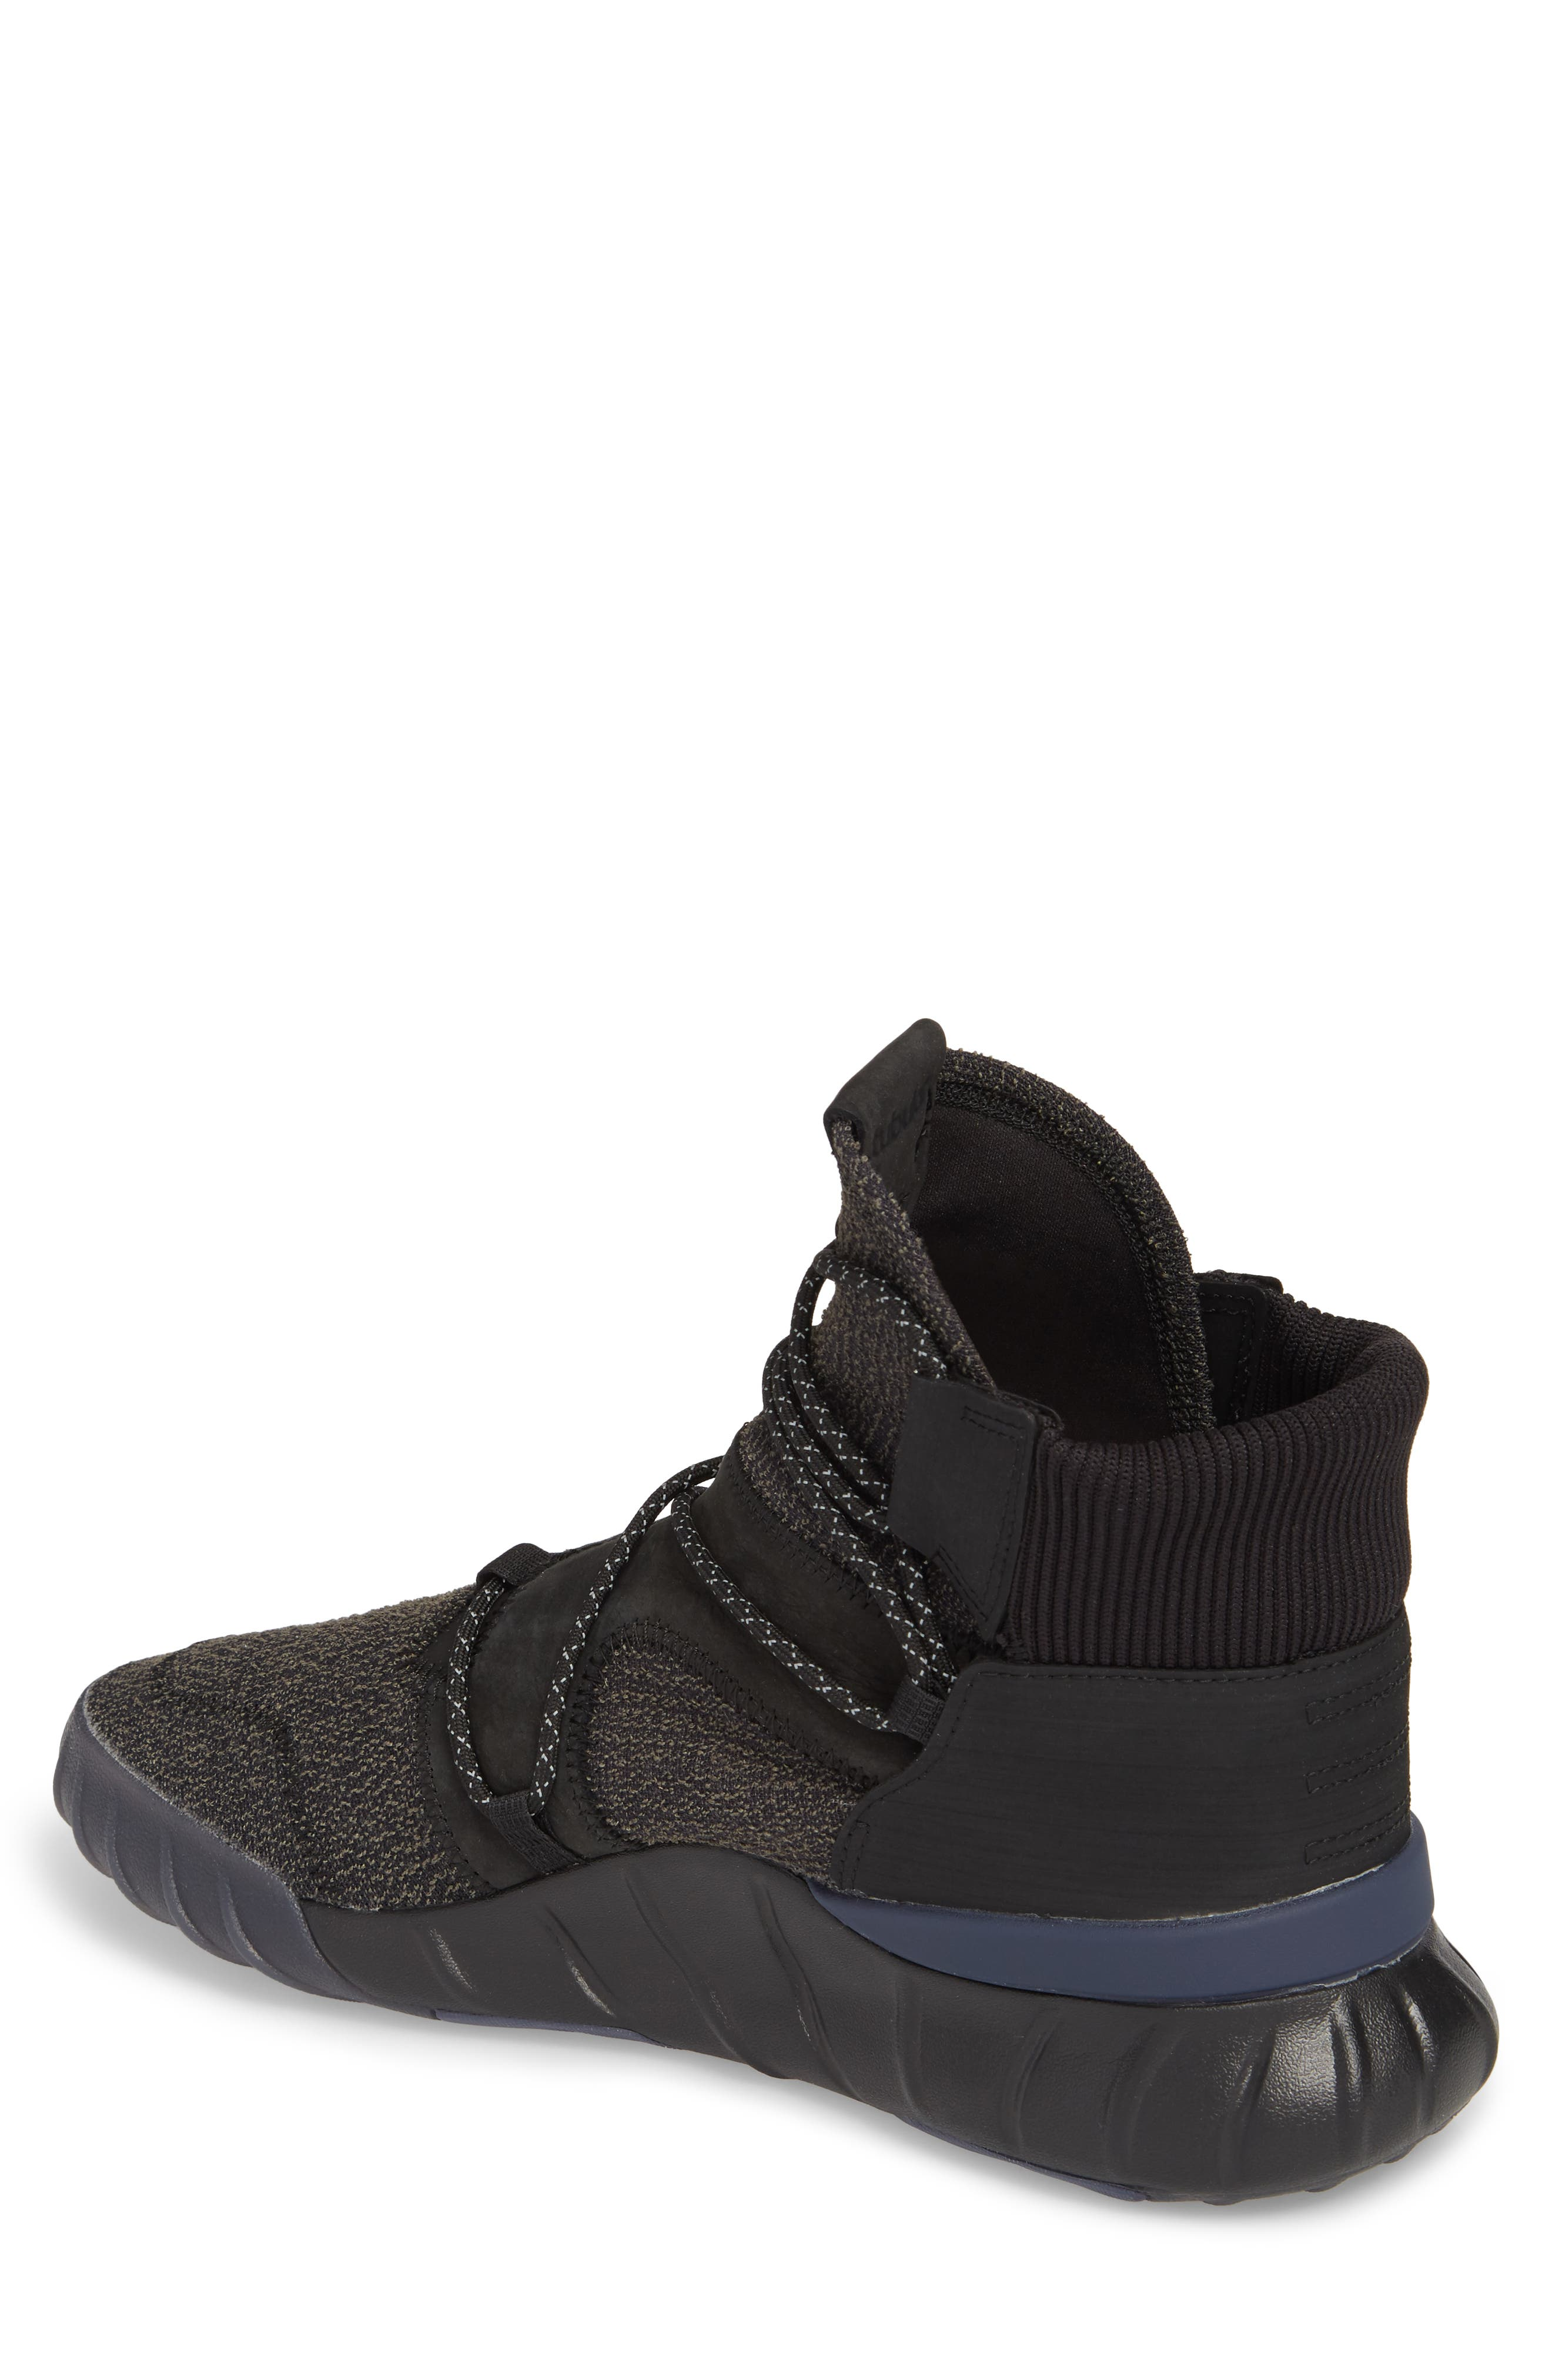 Tubular X 2.0 High Top Sneaker,                             Alternate thumbnail 2, color,